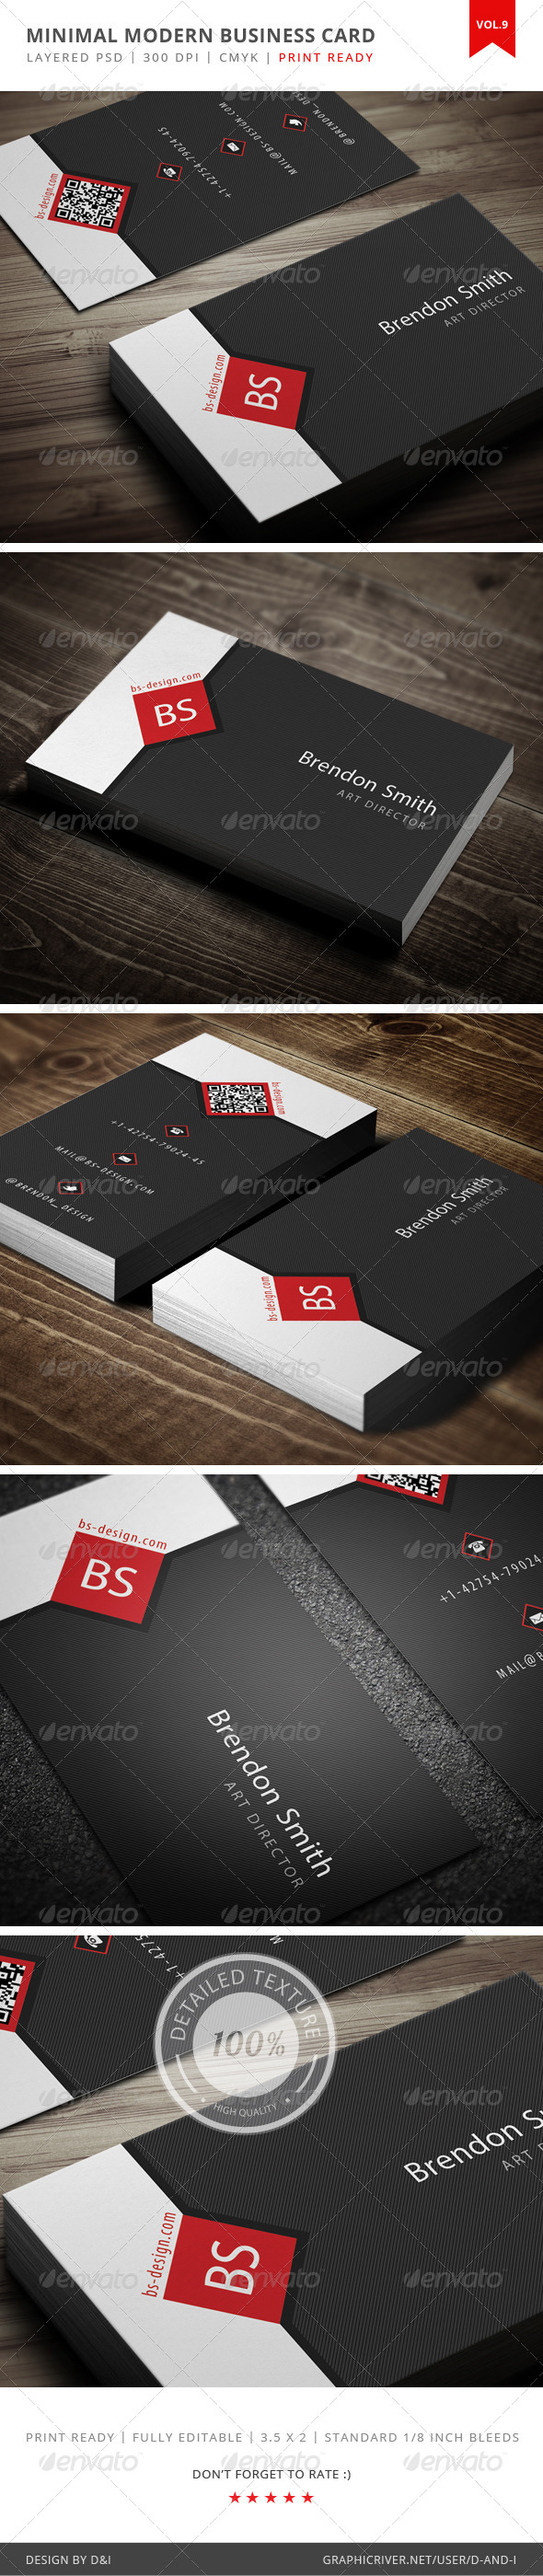 GraphicRiver Minimal Modern Business Card Vol.9 4124366